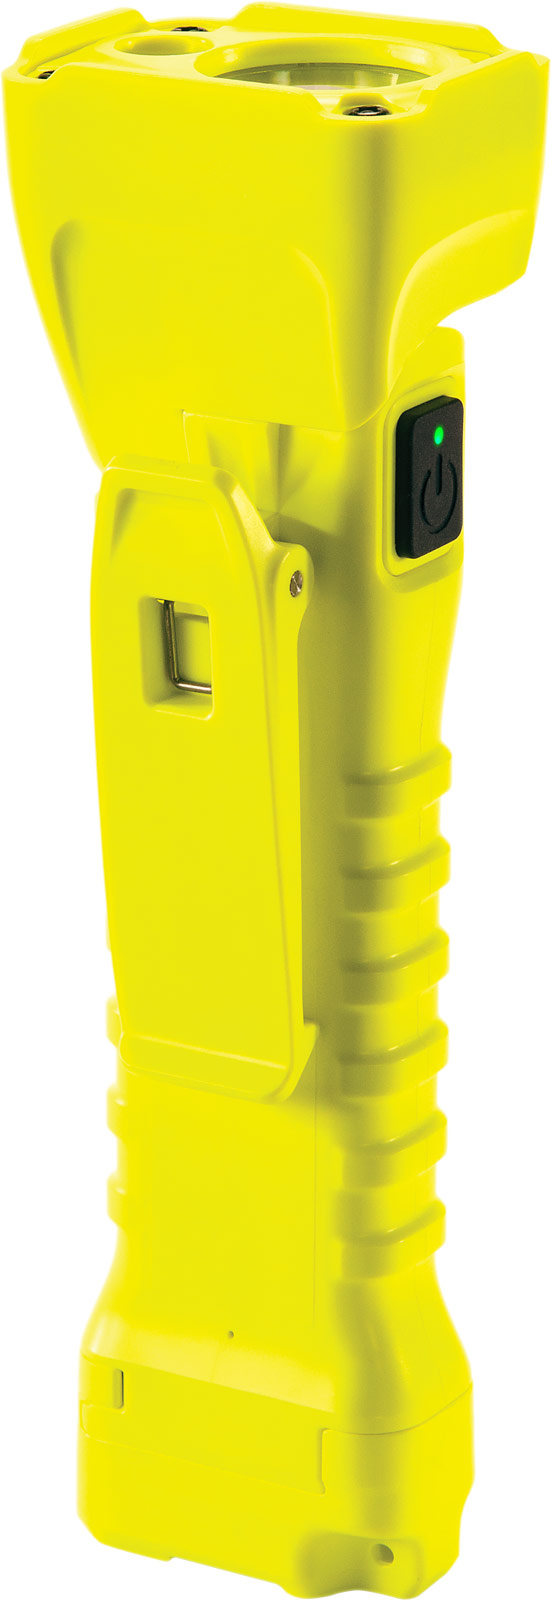 buy pelican flashlight 3415 intrinsically safe light